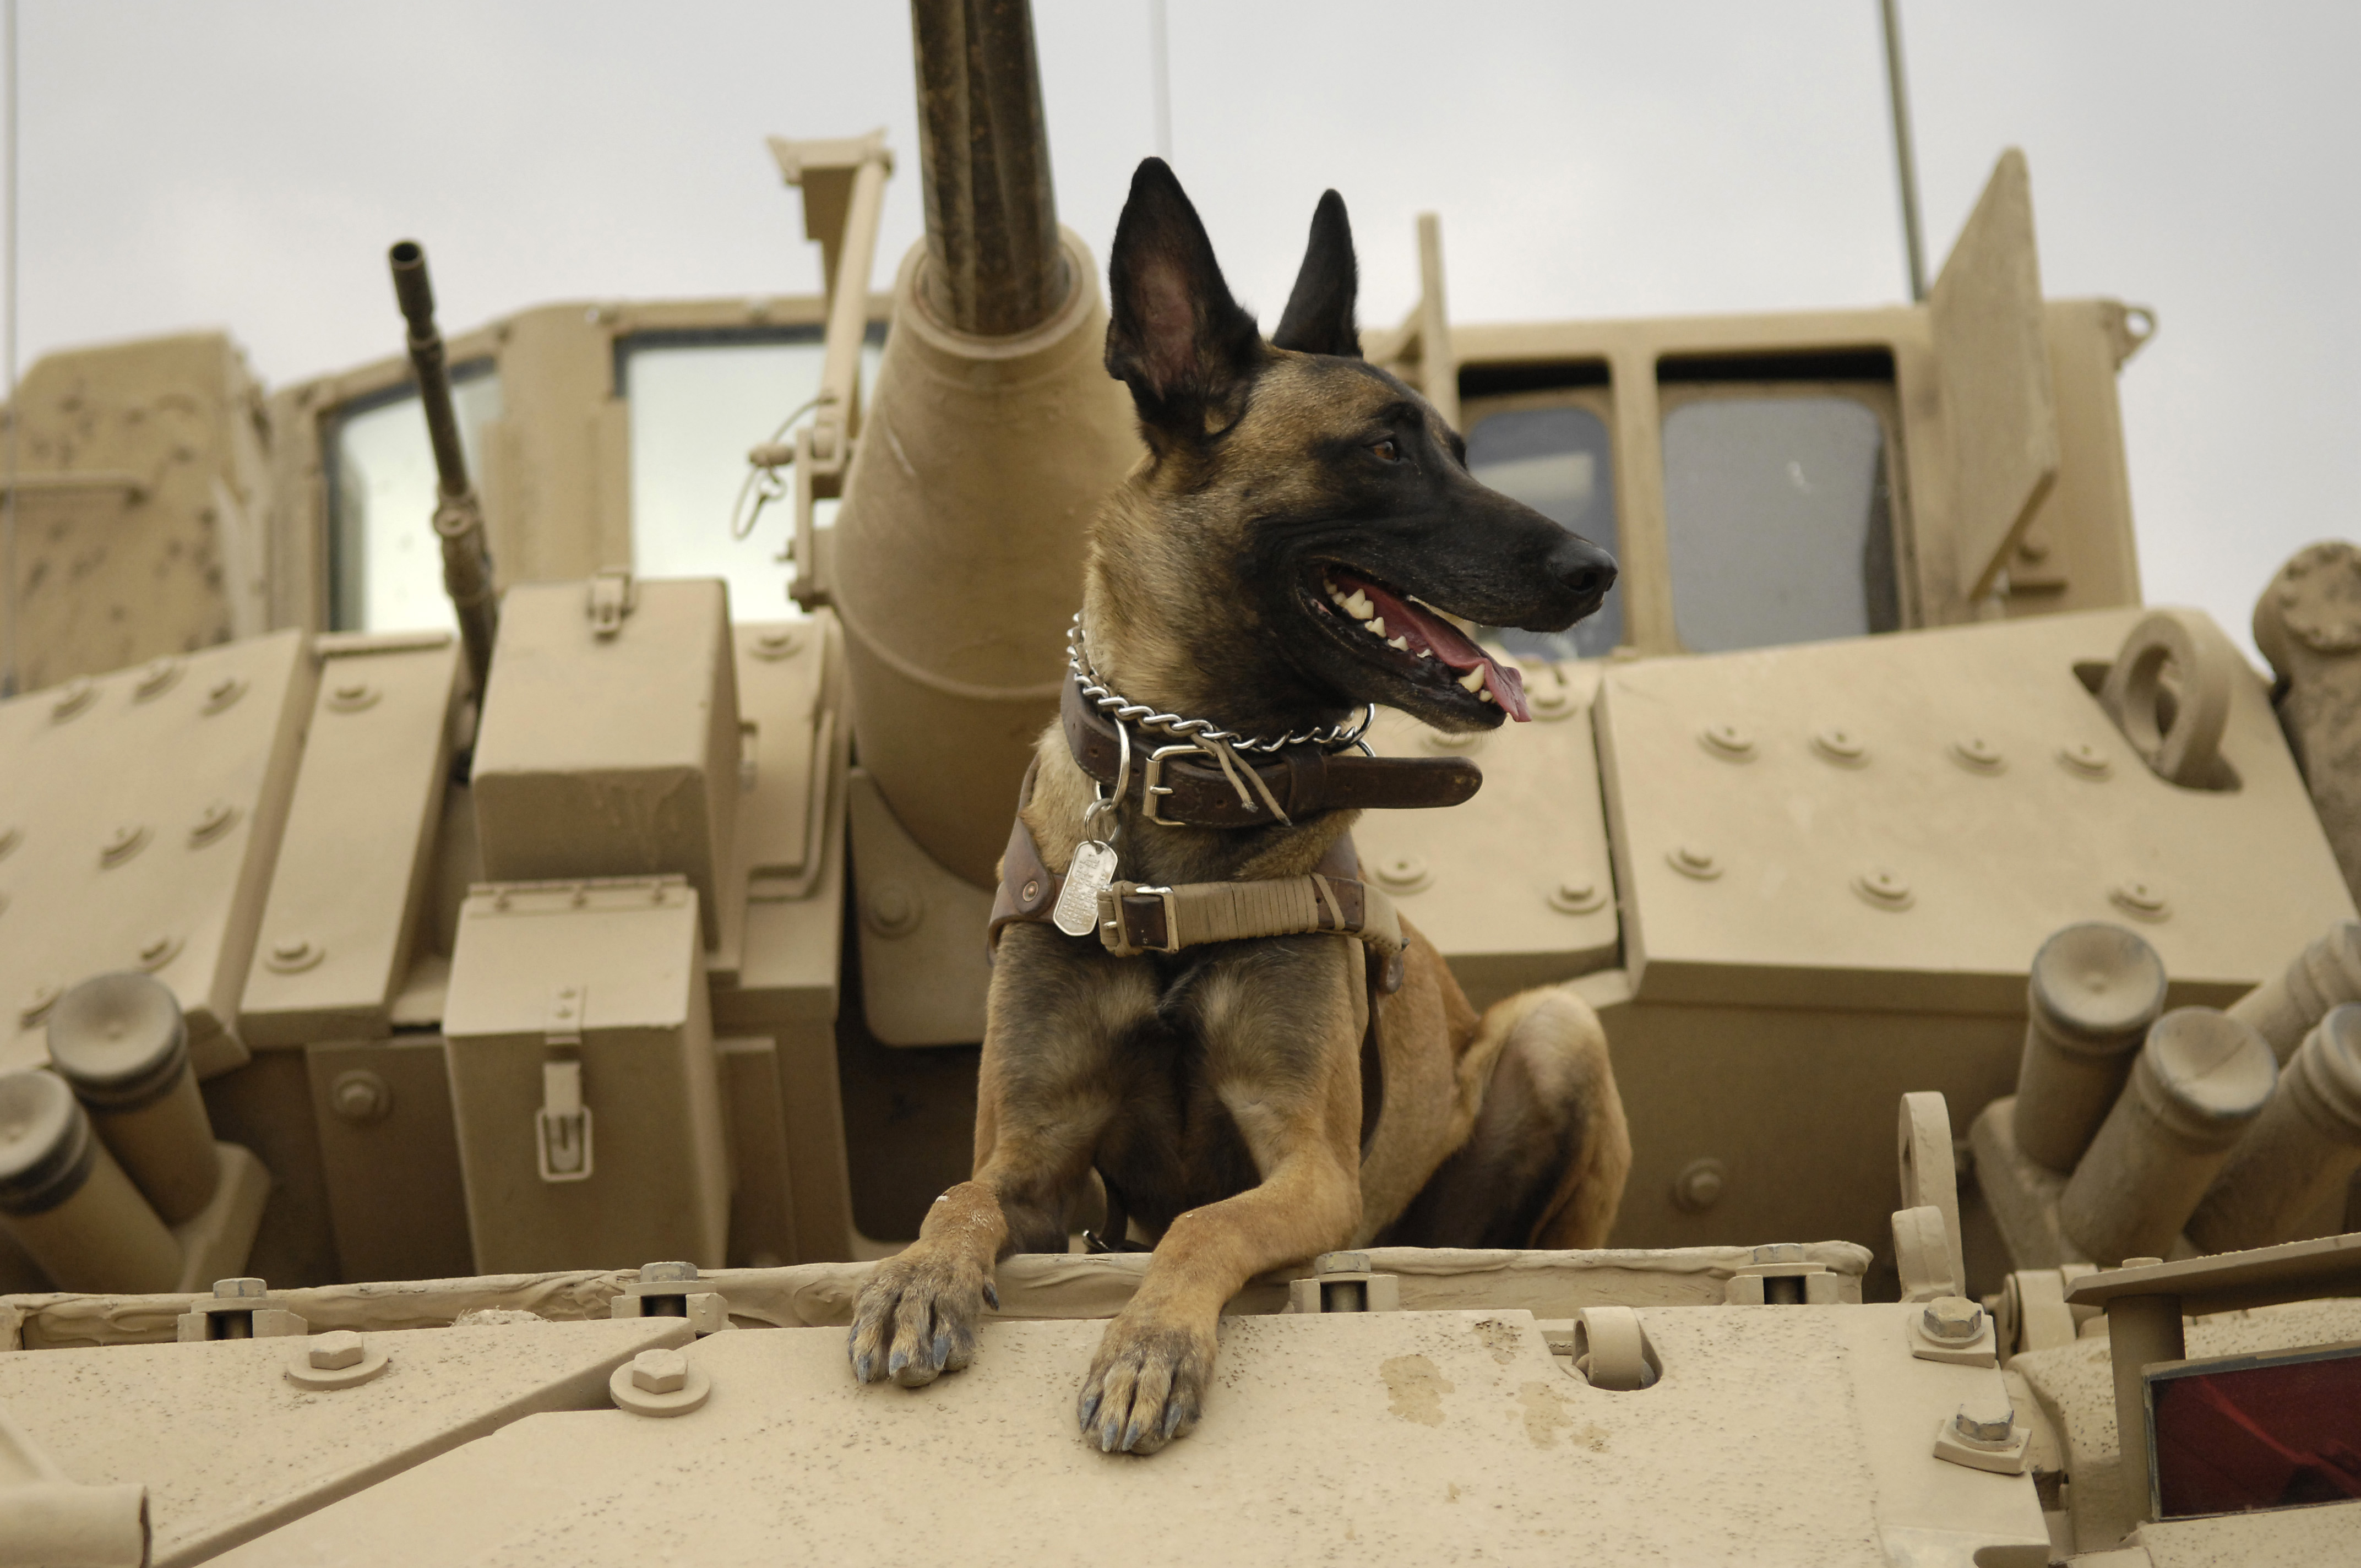 'Jackson', a United States military dog, in Iraq; Credit: Staff Sgt. Stacy L. Pearsall